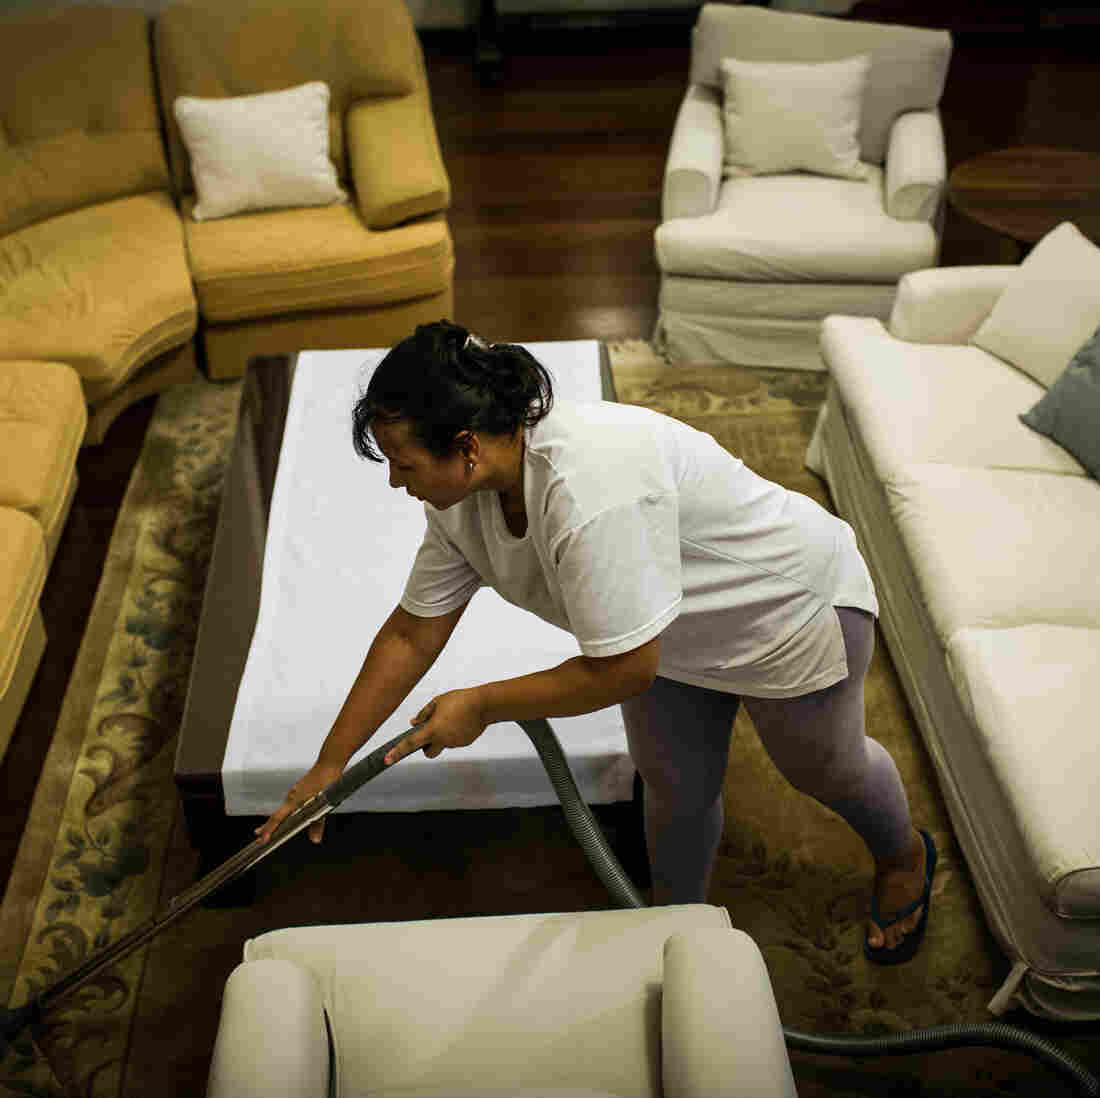 'We Are Not Valued': Brazil's Domestic Workers Seek Rights